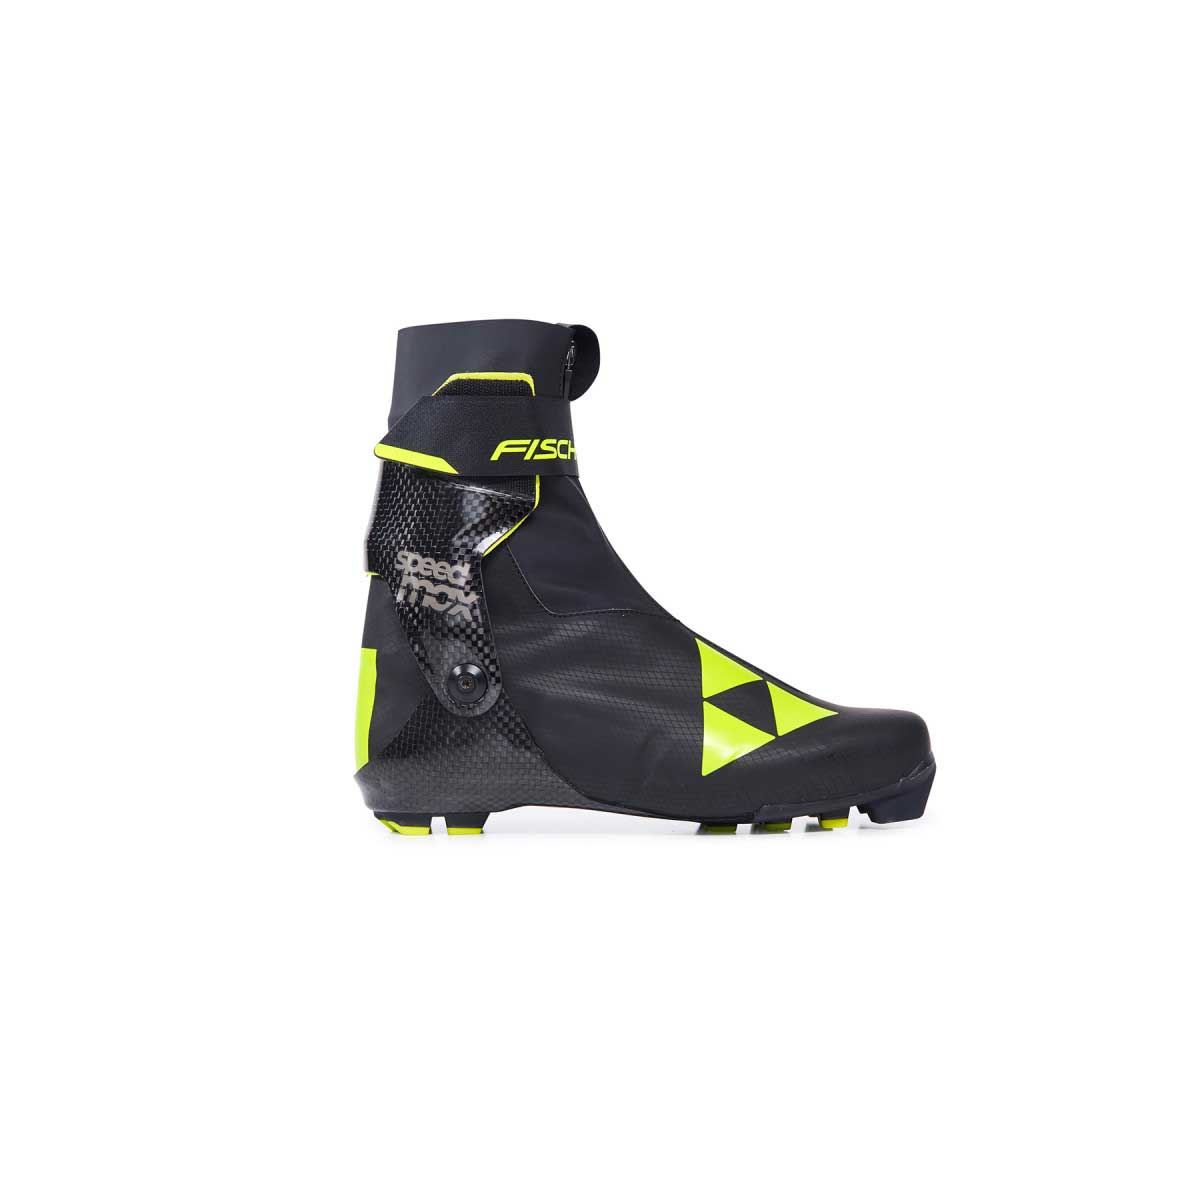 Fischer Speedmax Skate Boot in Black and Yellow